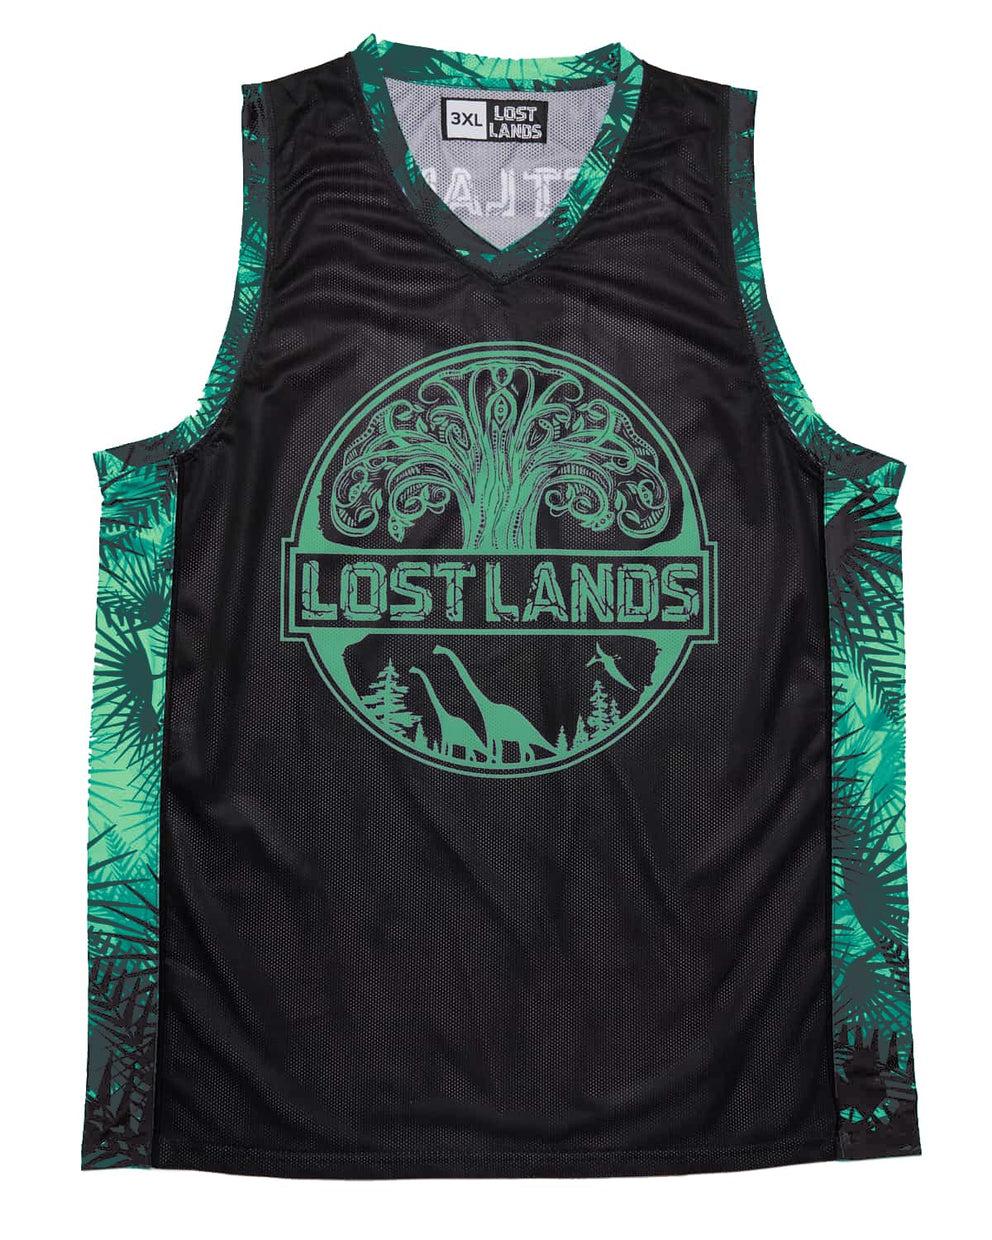 Lost Lands 2018 'Foliage' Basketball Jersey - Black/Green